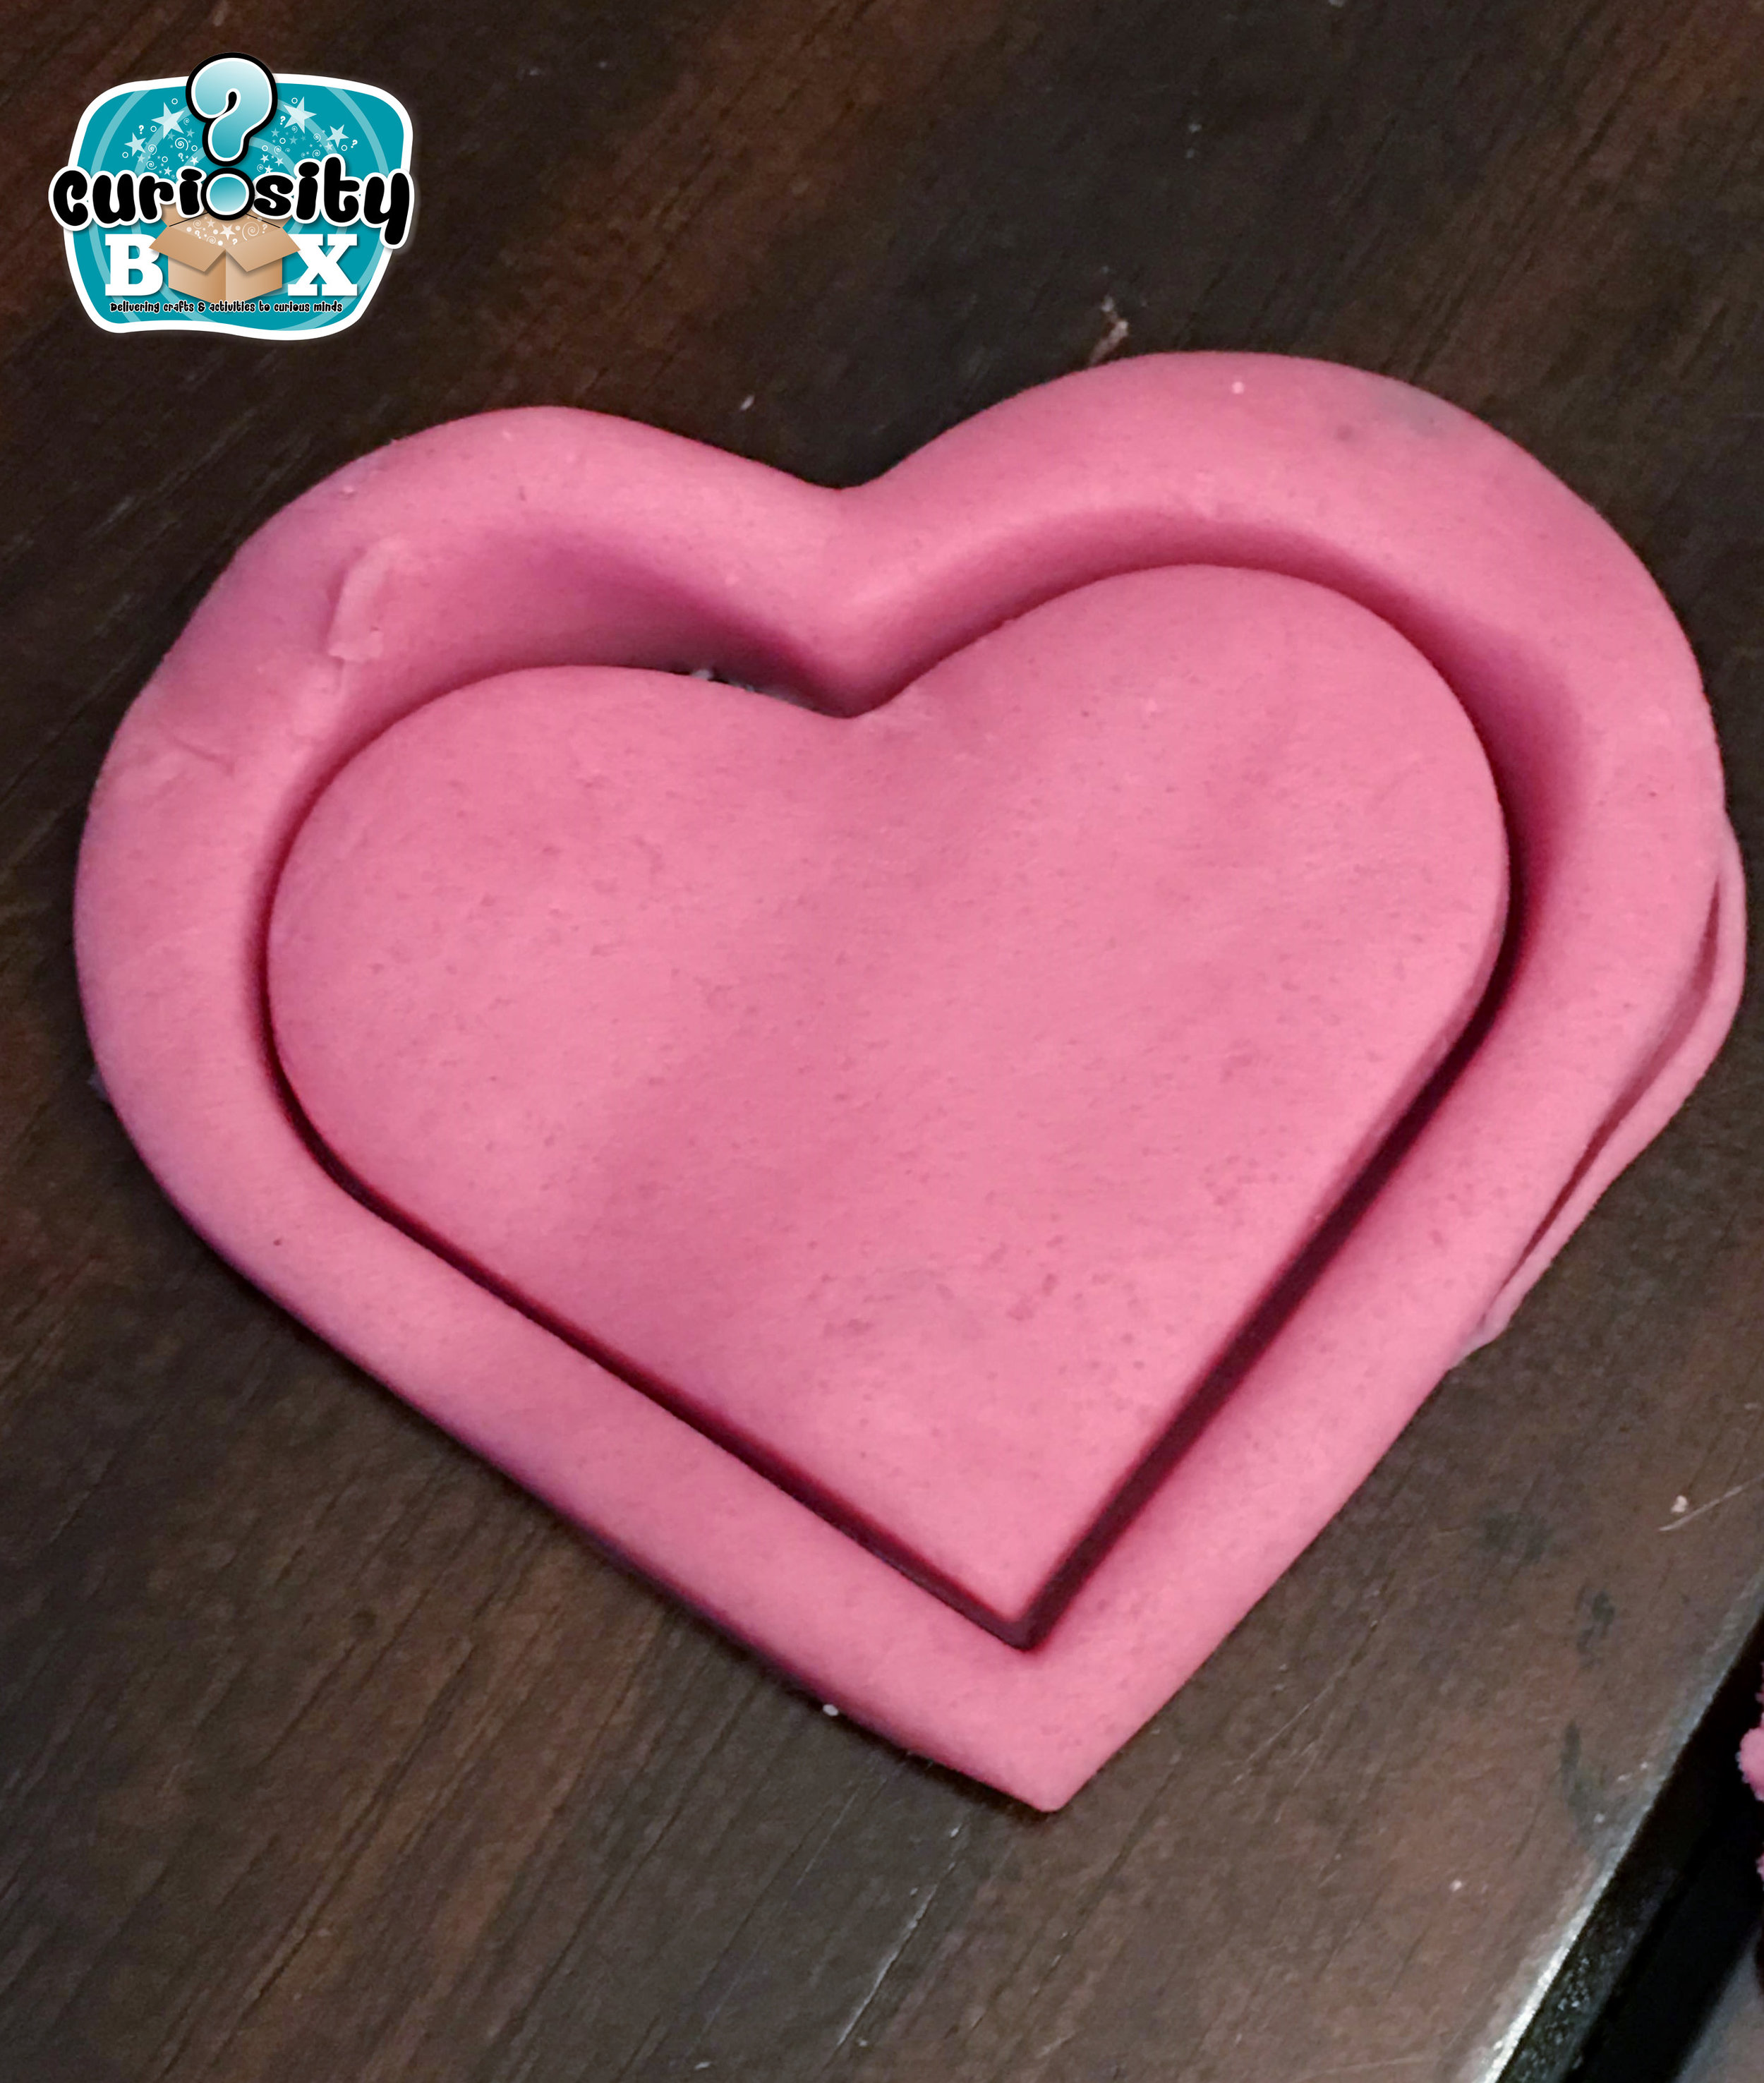 Curiosity Box Valentine Playdoh 4.JPG